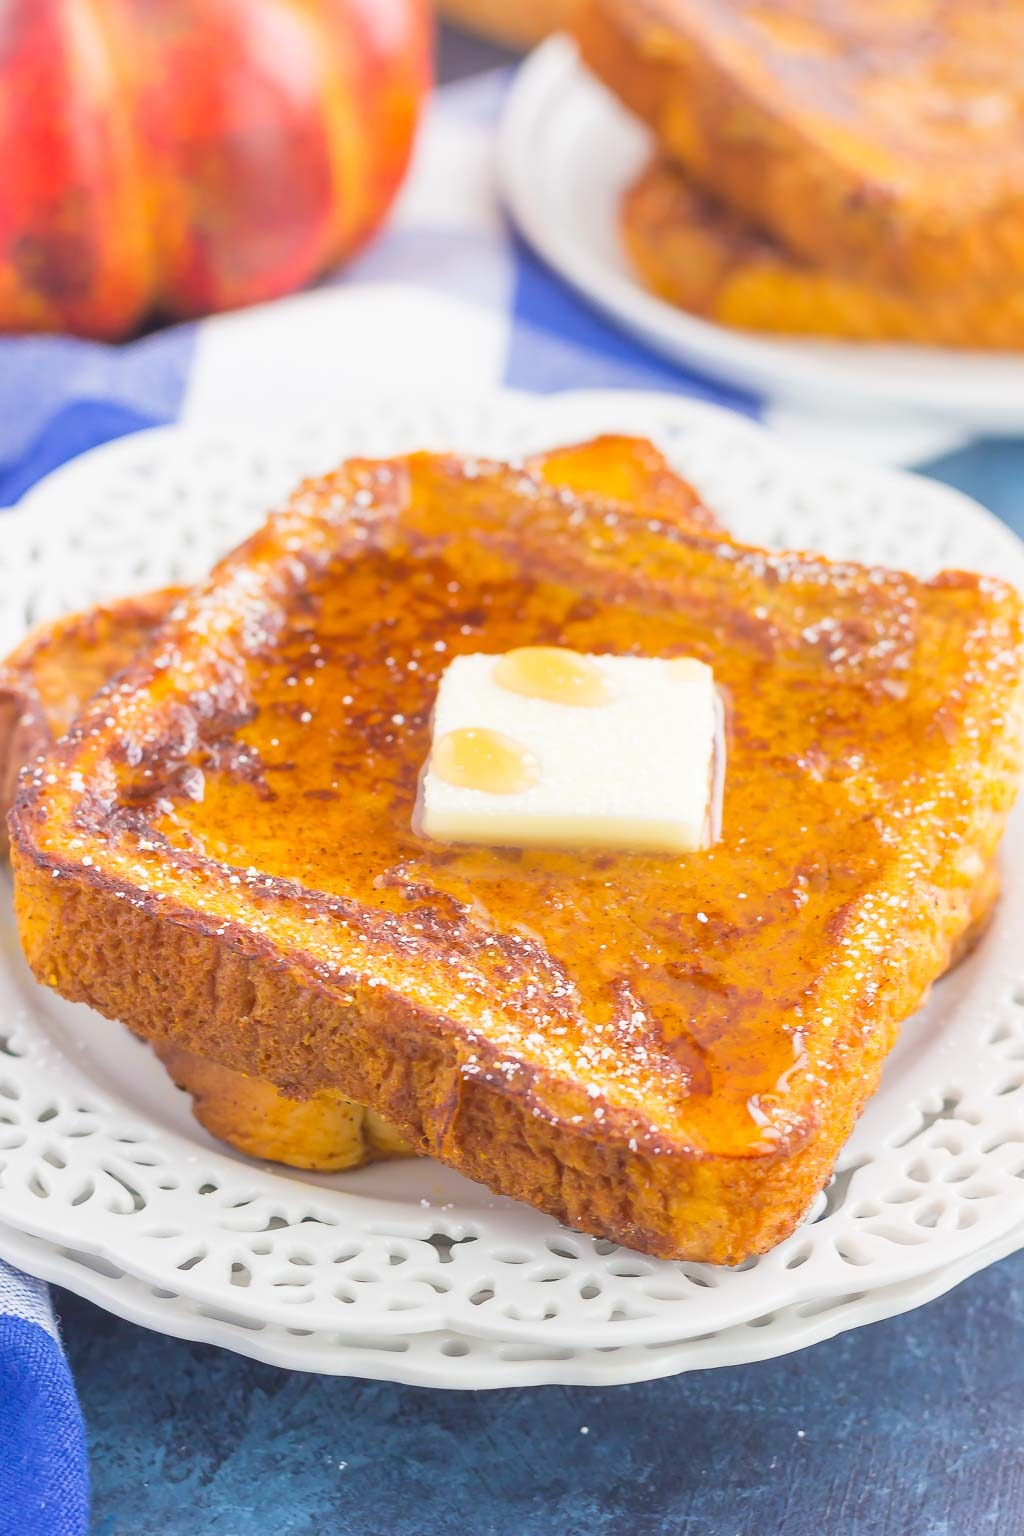 This Pumpkin Spice French Toast is the best breakfast to enjoy on those chilly fall mornings. Crispy on the outside and tender on the inside, this easy dish is bursting with flavor and perfect for the whole family to enjoy!